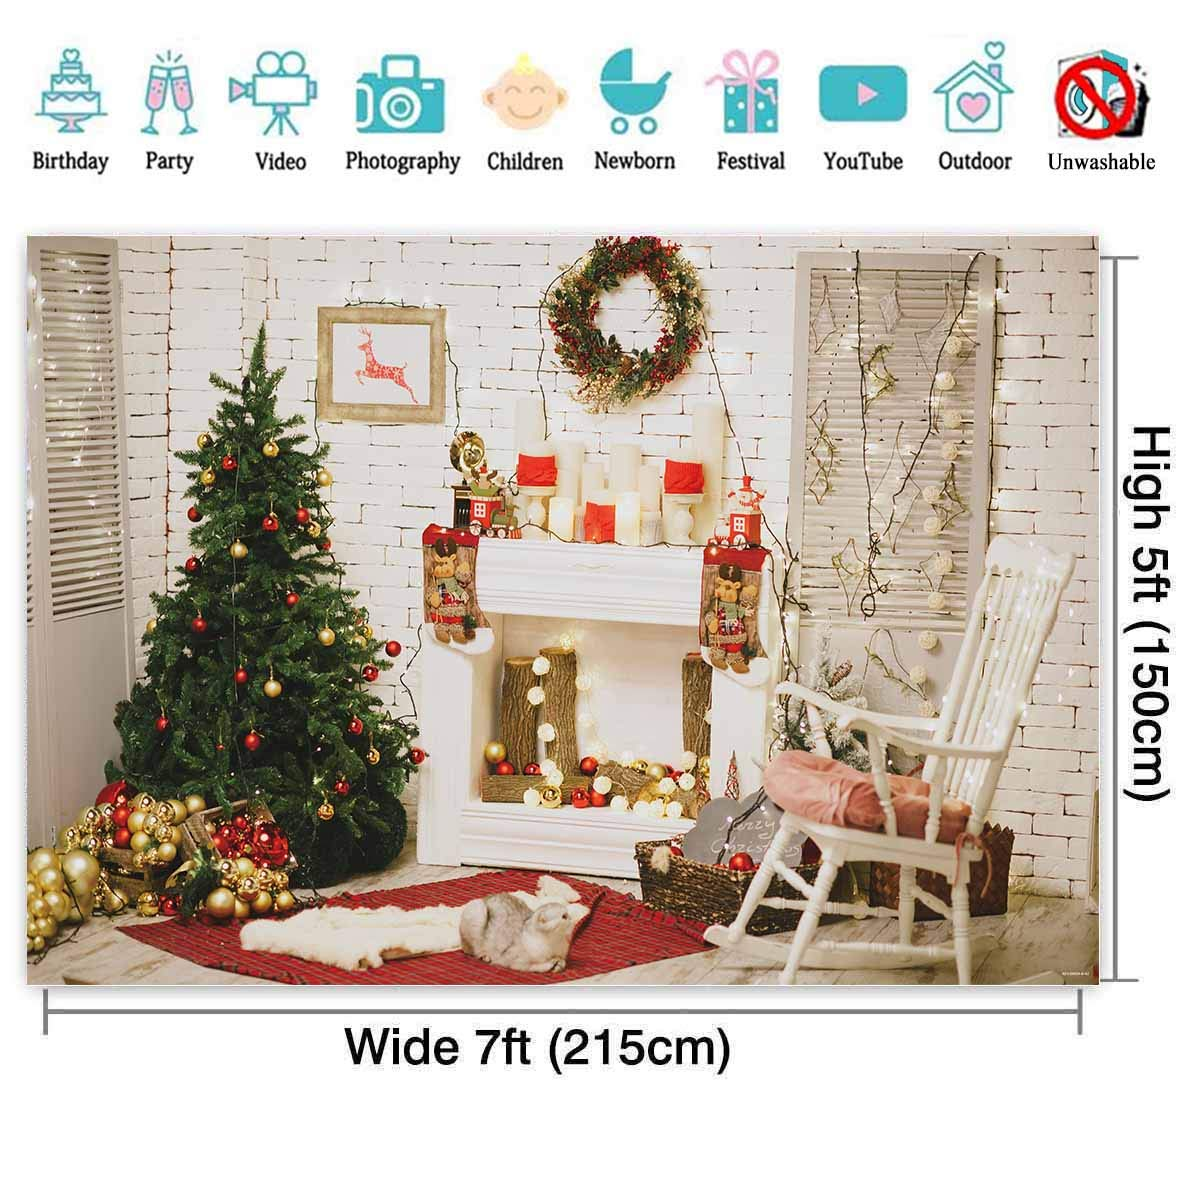 Colorful Christmas Background For Kids.Allenjoy 7x5ft Christmas Room Backdrop For Kids Photography Xmas Tree Fireplace White Brick Wall Glitter Xmas Decorations Photo Studio Background